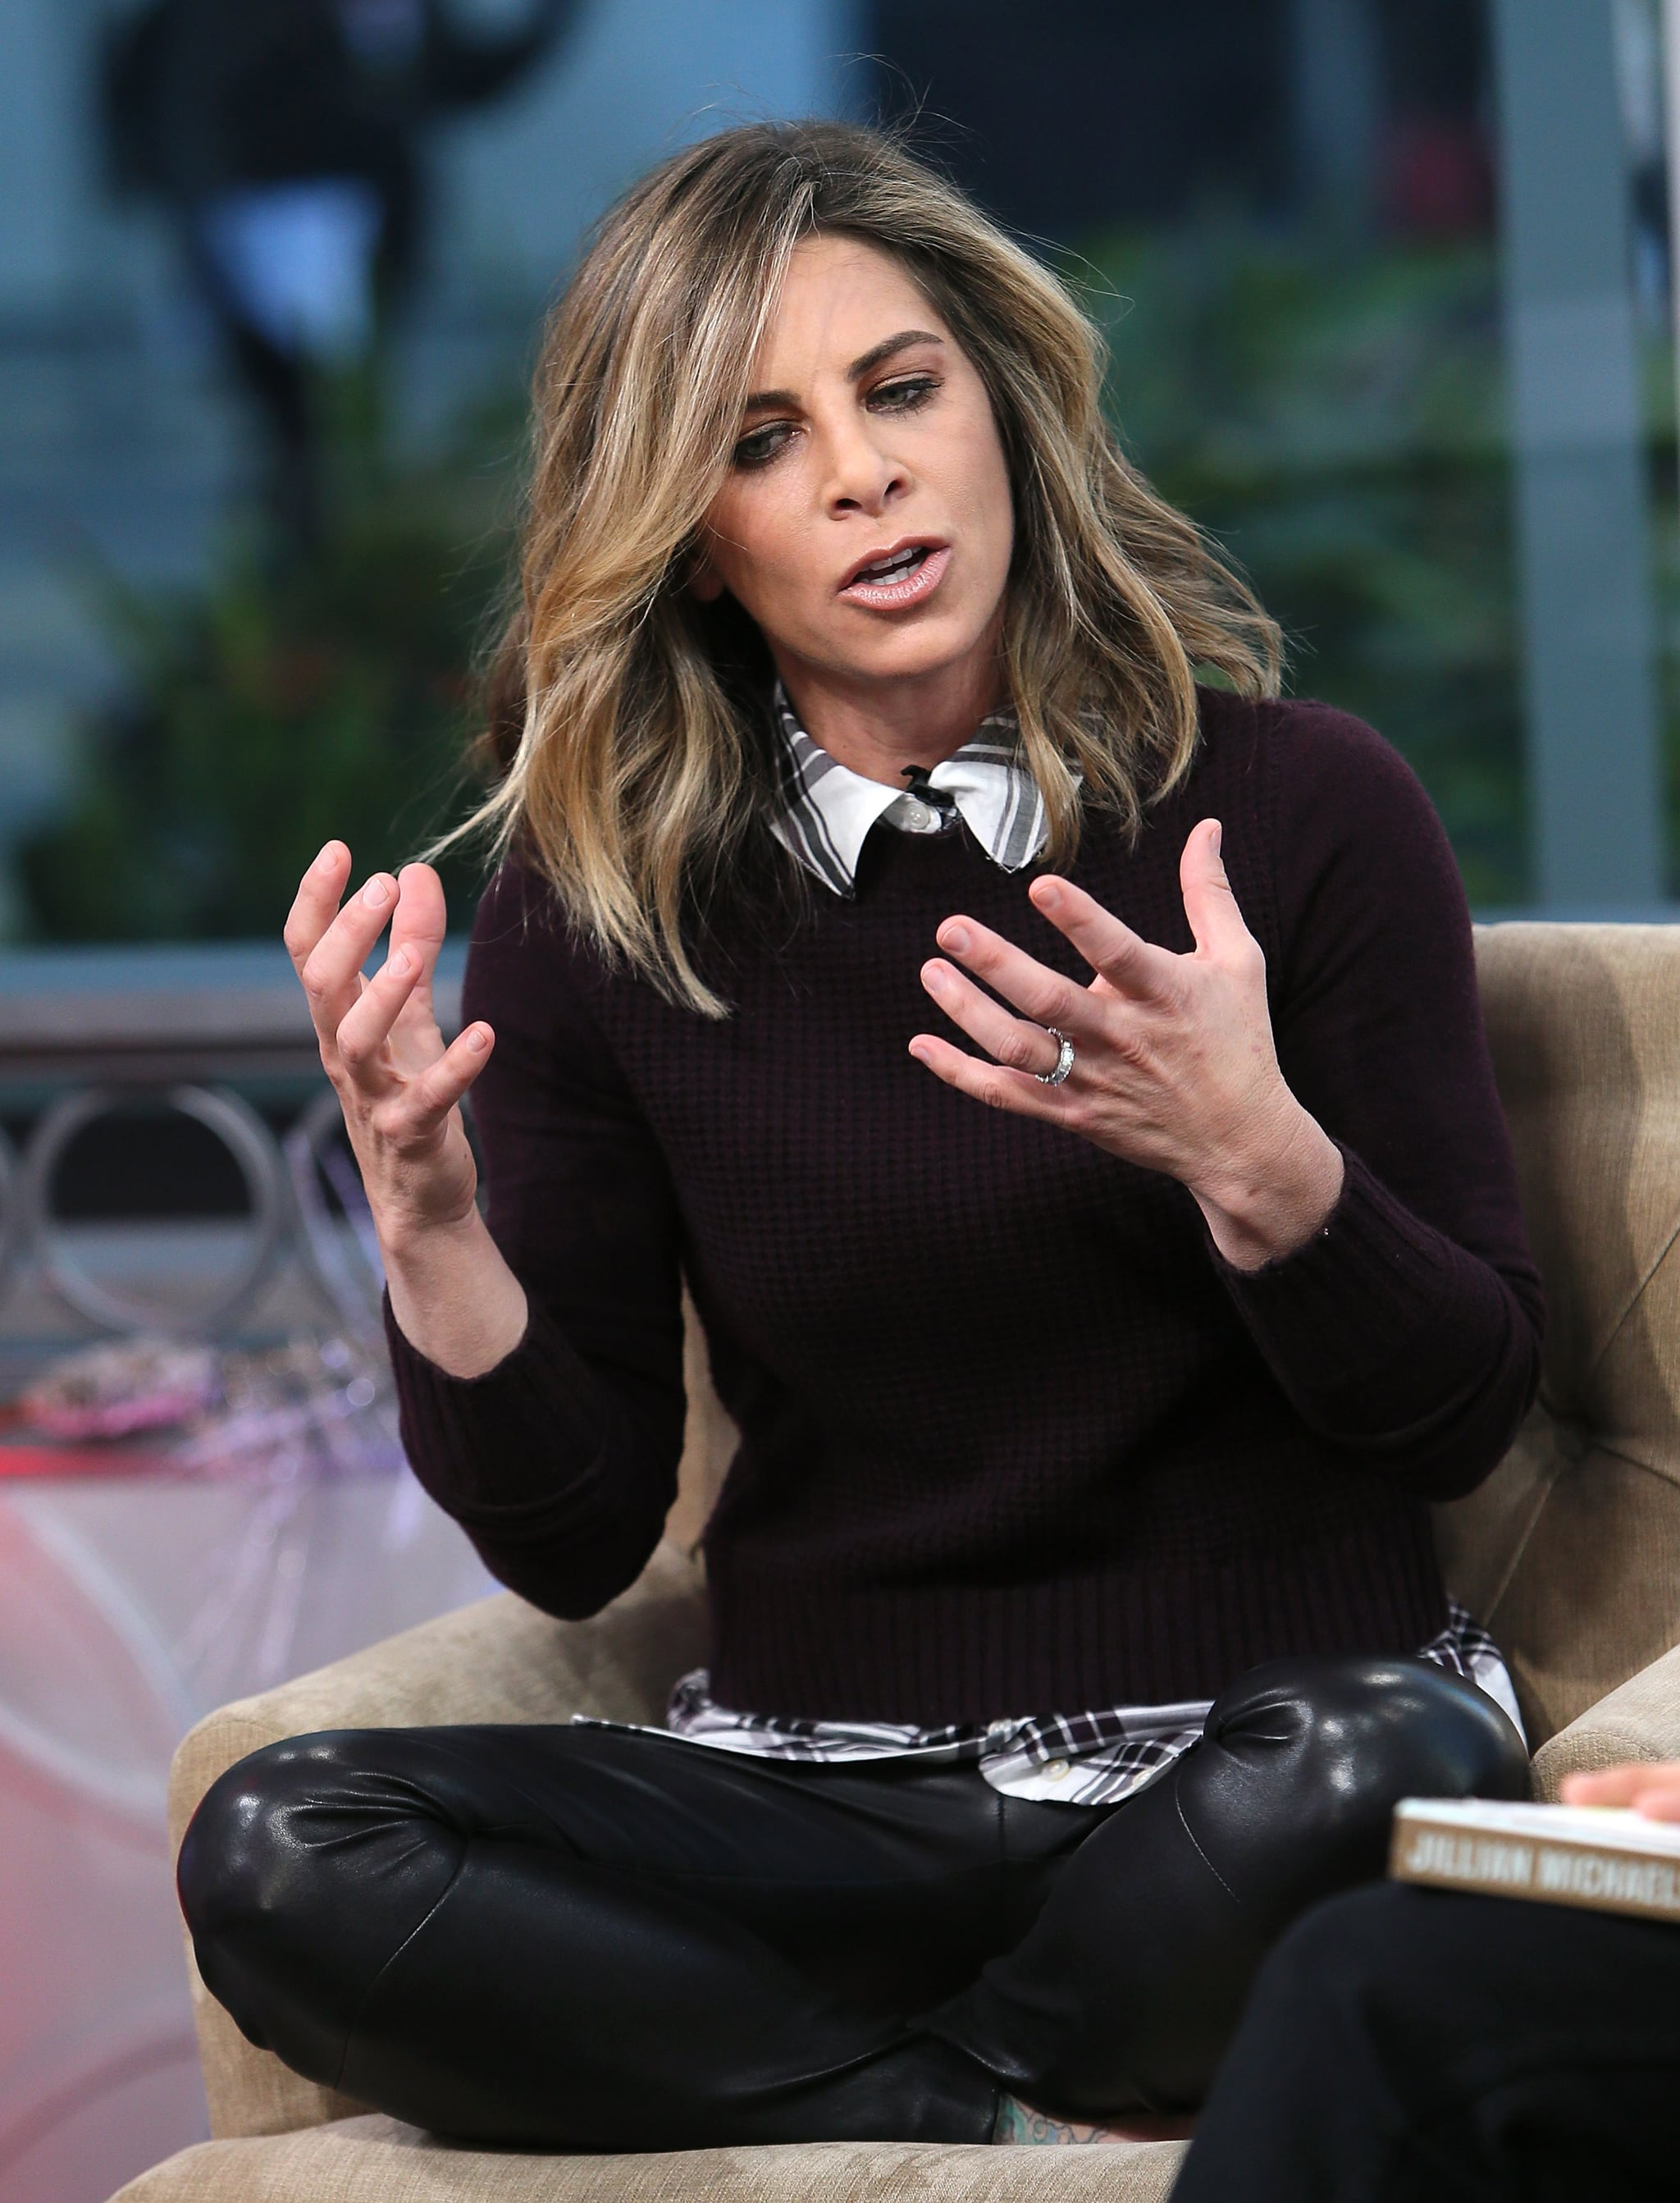 Jillian Michaels nudes (84 photos), photo Ass, YouTube, panties 2020